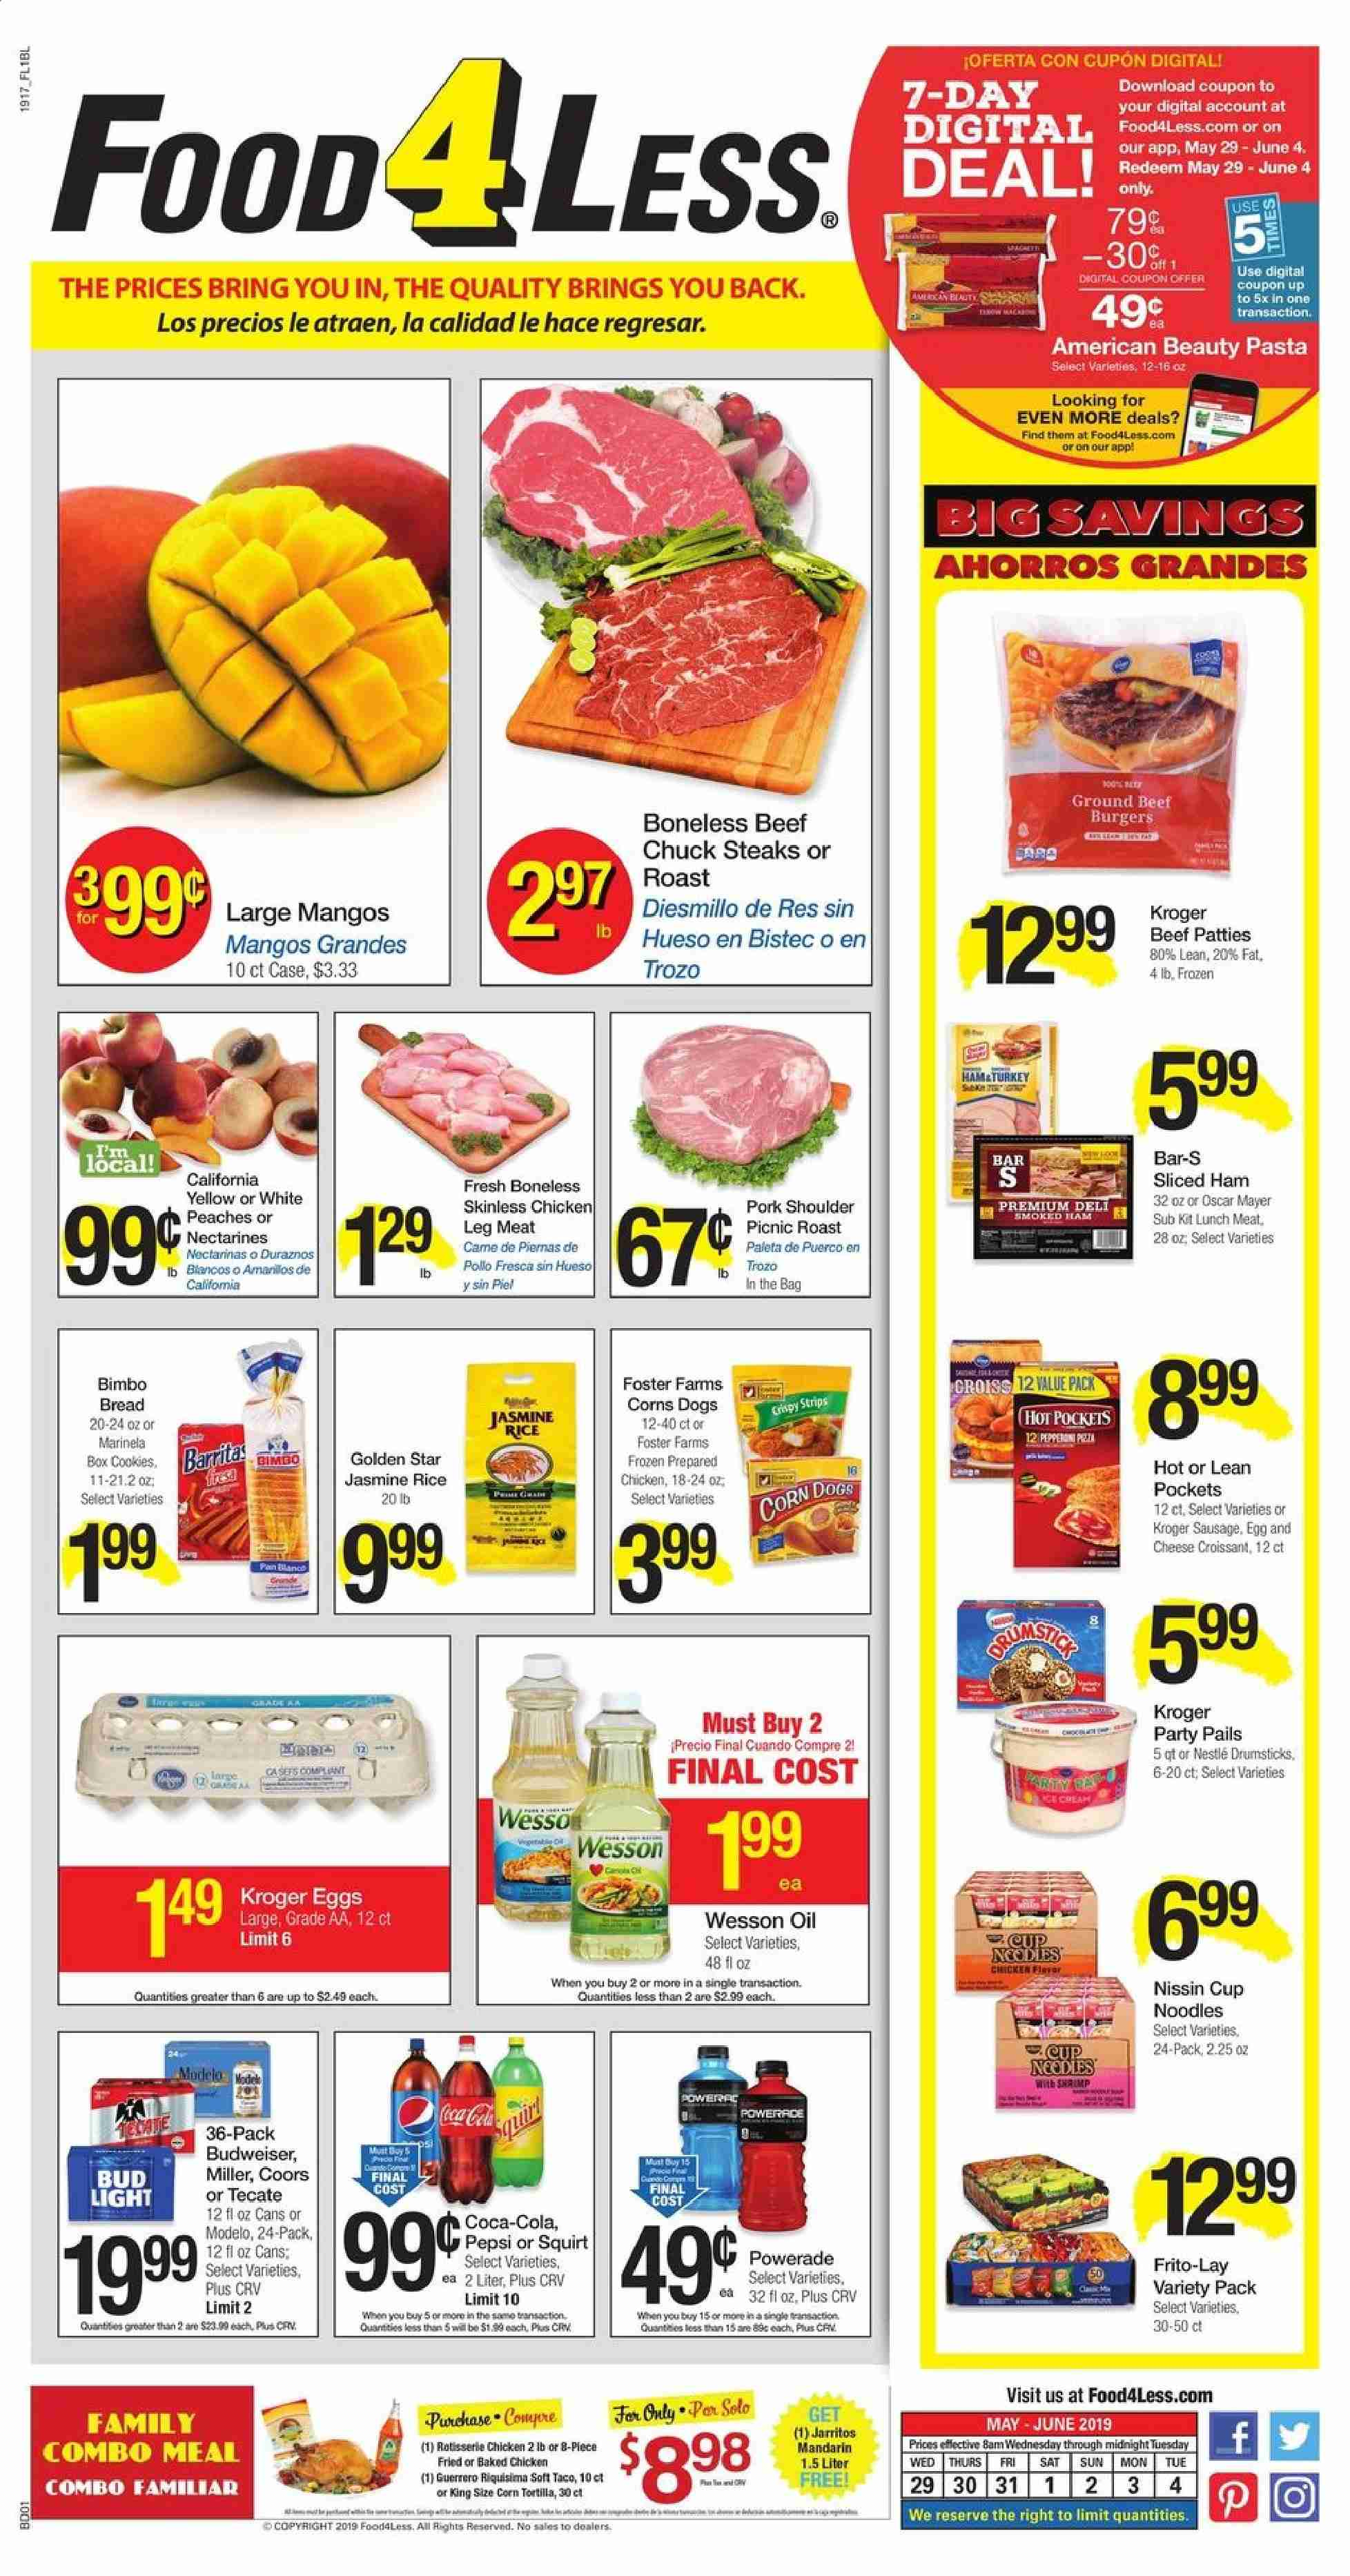 Food 4 Less Flyer - 05.29.2019 - 06.04.2019 - Sales products - Bud Light, Coors, corn, mango, croissant, ham, sausage, lunch meat, cheese, eggs, Nestlé, rice, noodle, jasmine rice, pasta, oil, Coca-Cola, chicken, beef meat, pork meat, pork shoulder, Frozen, croissants. Page 1.